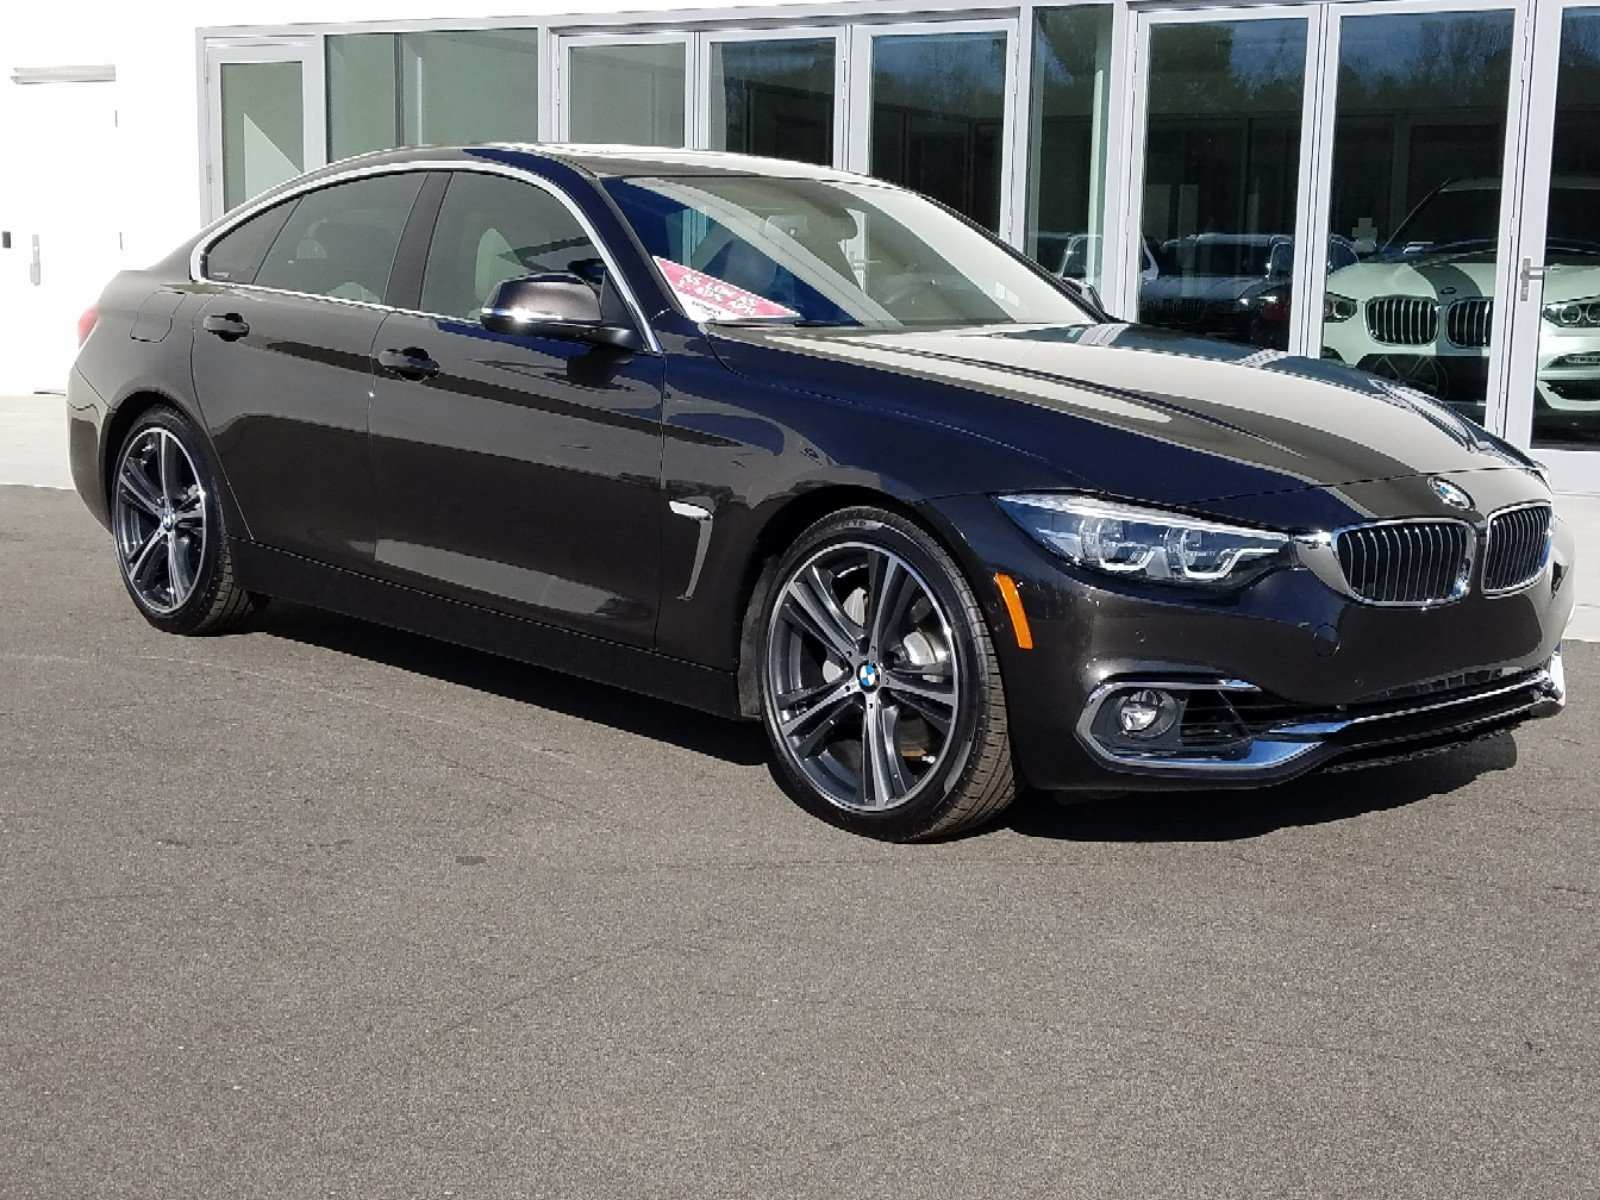 27 Best Review 2019 Bmw 4 Series Release Date Specs by 2019 Bmw 4 Series Release Date